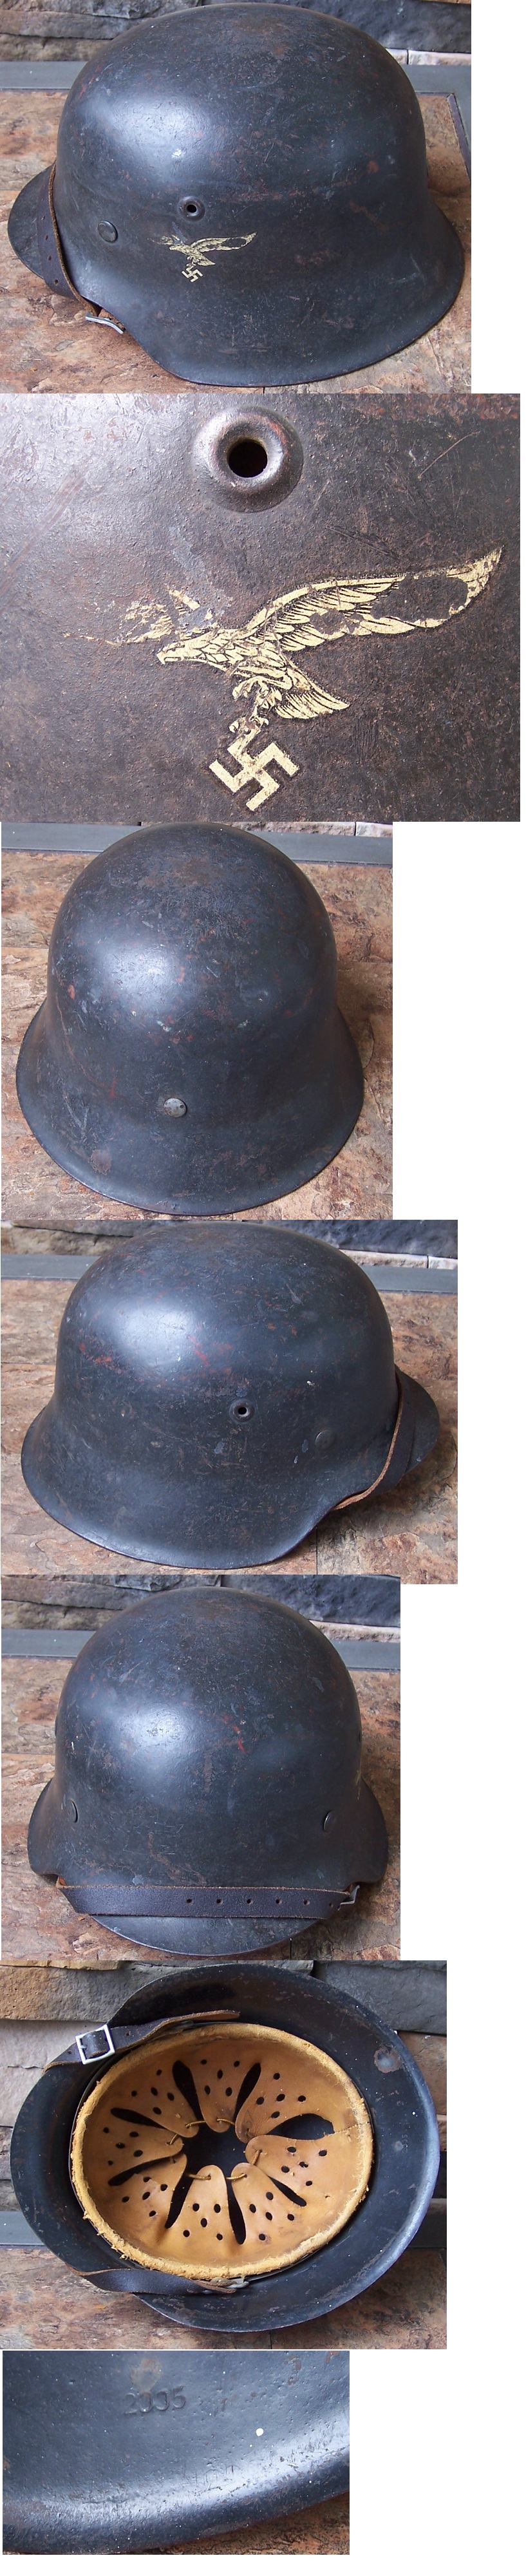 M42 SD Luftwaffe Helmet by ET64